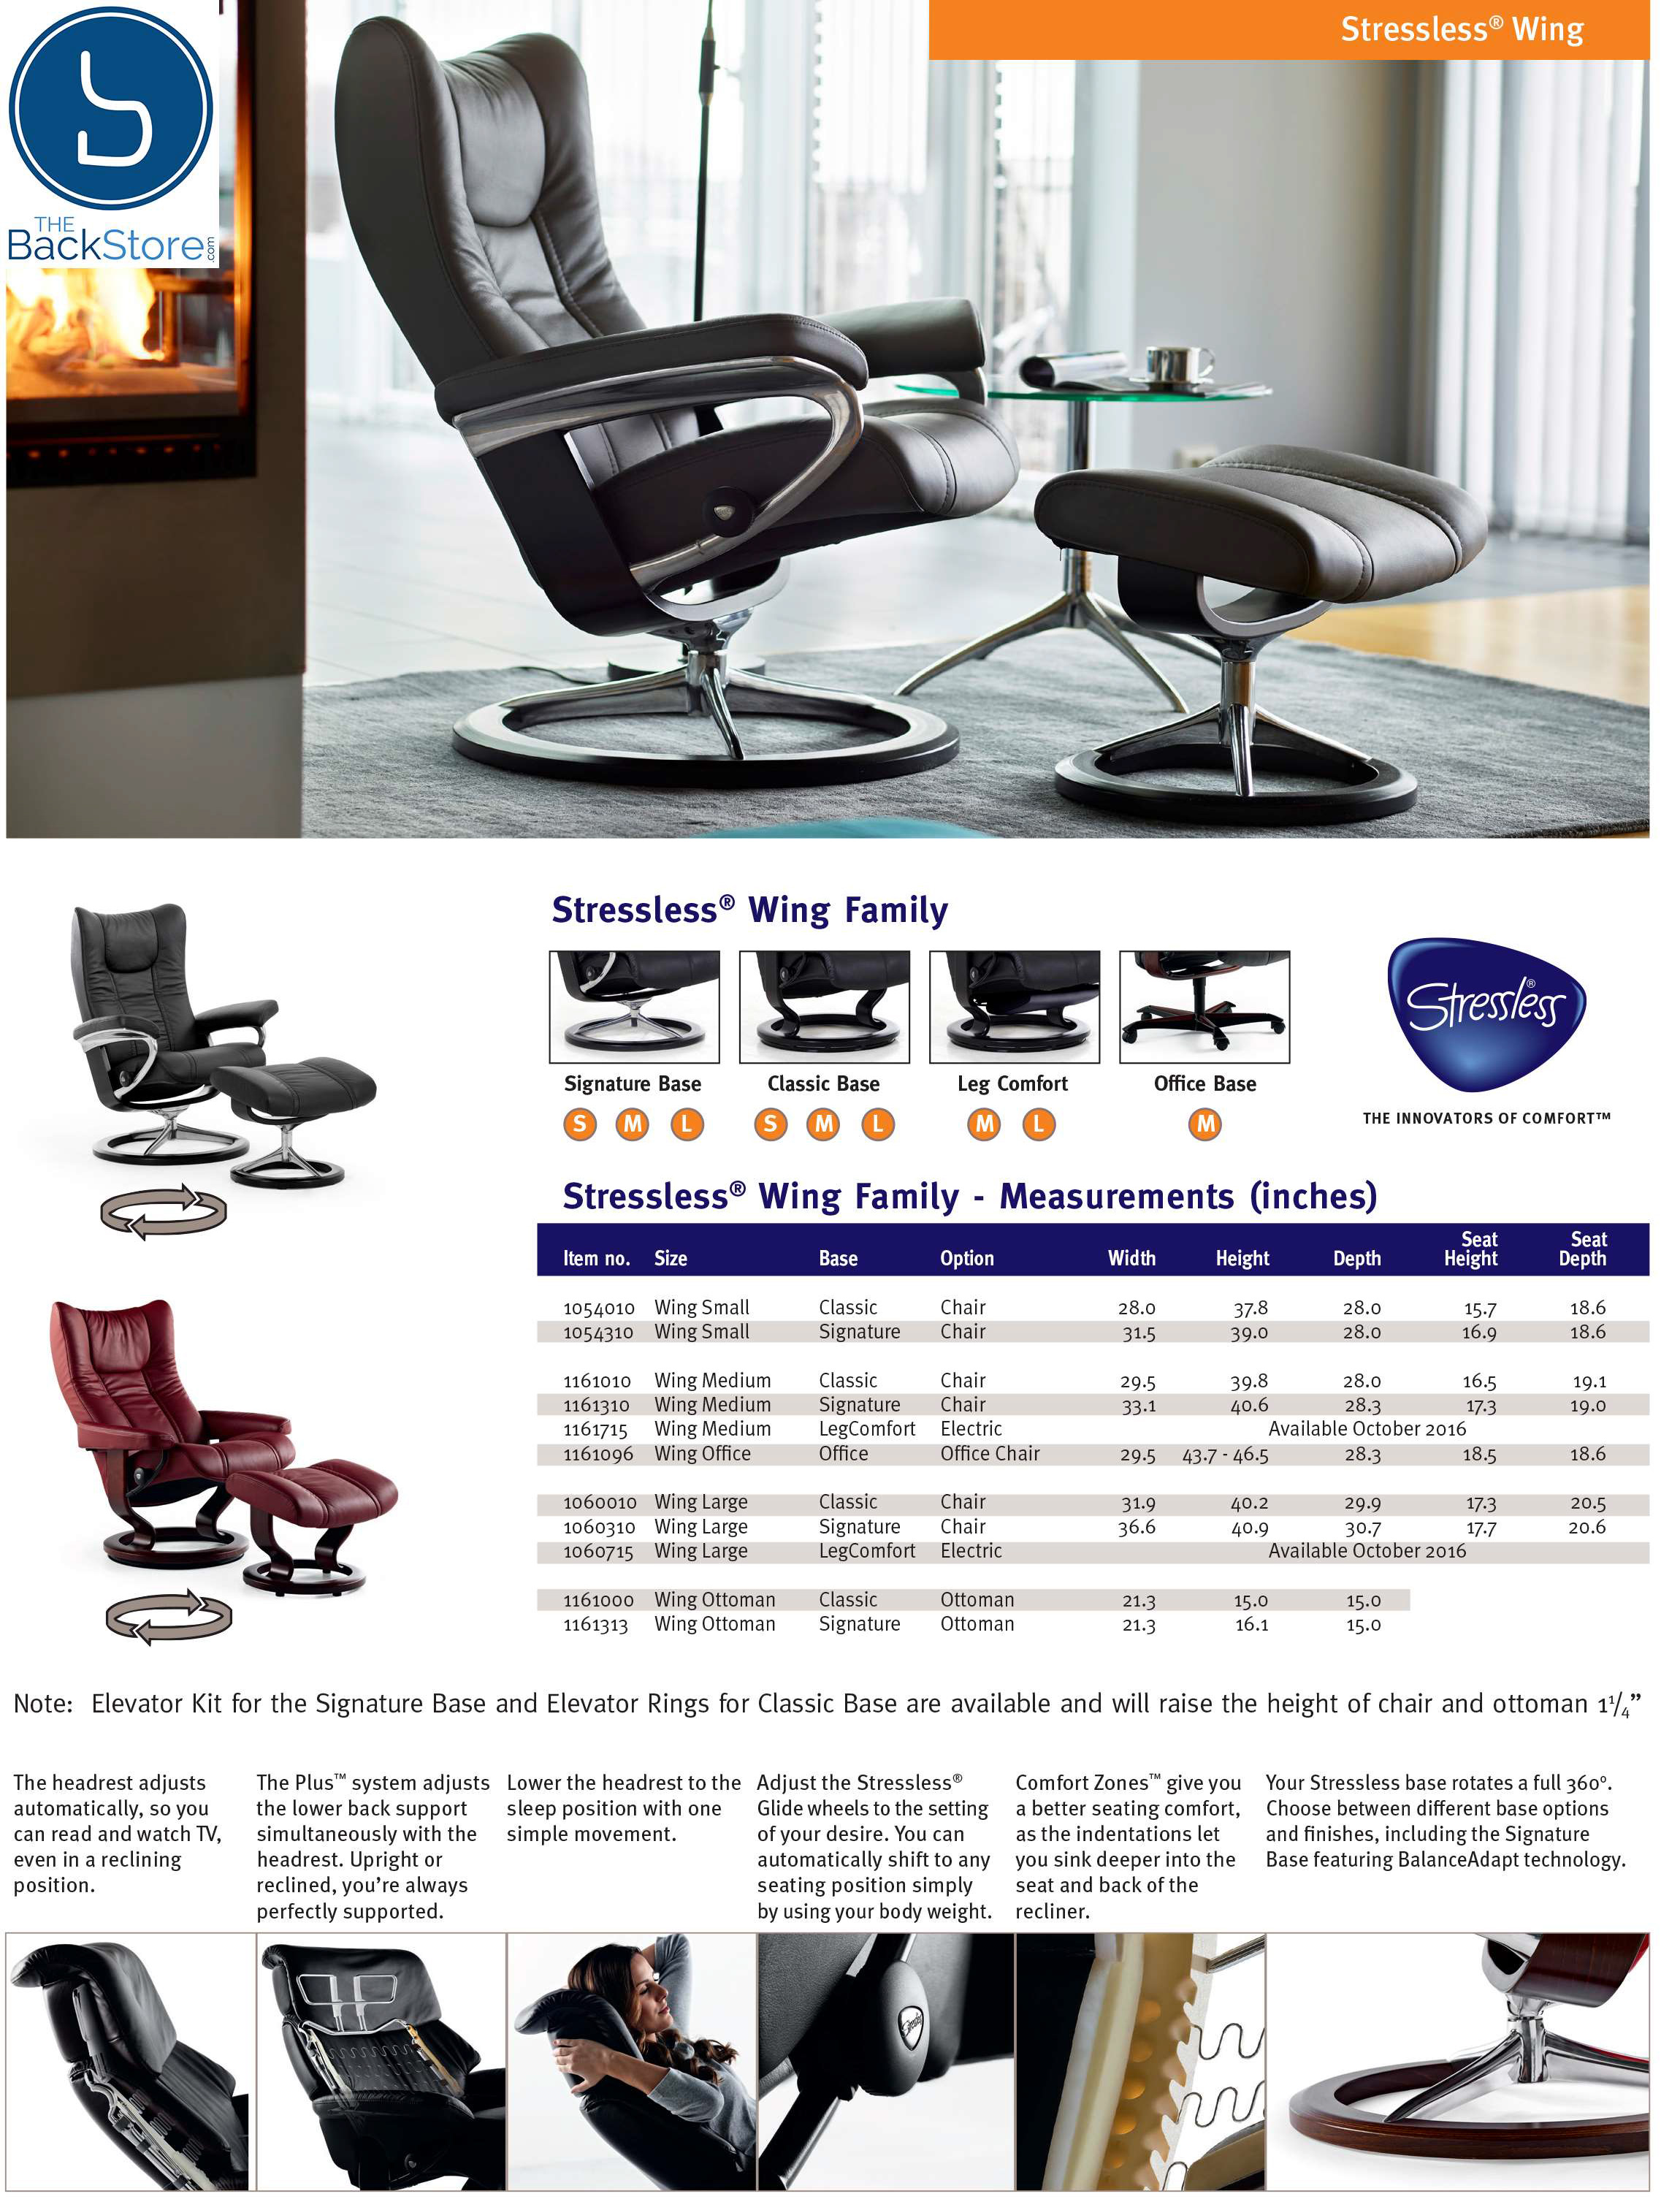 Stressless Wing Leather Recliner Chair and Ottoman by Ekornes  sc 1 st  Vitalityweb.com & Stressless Wing Recliner Chairs - Ekornes Stressless Wing Eagle ... islam-shia.org